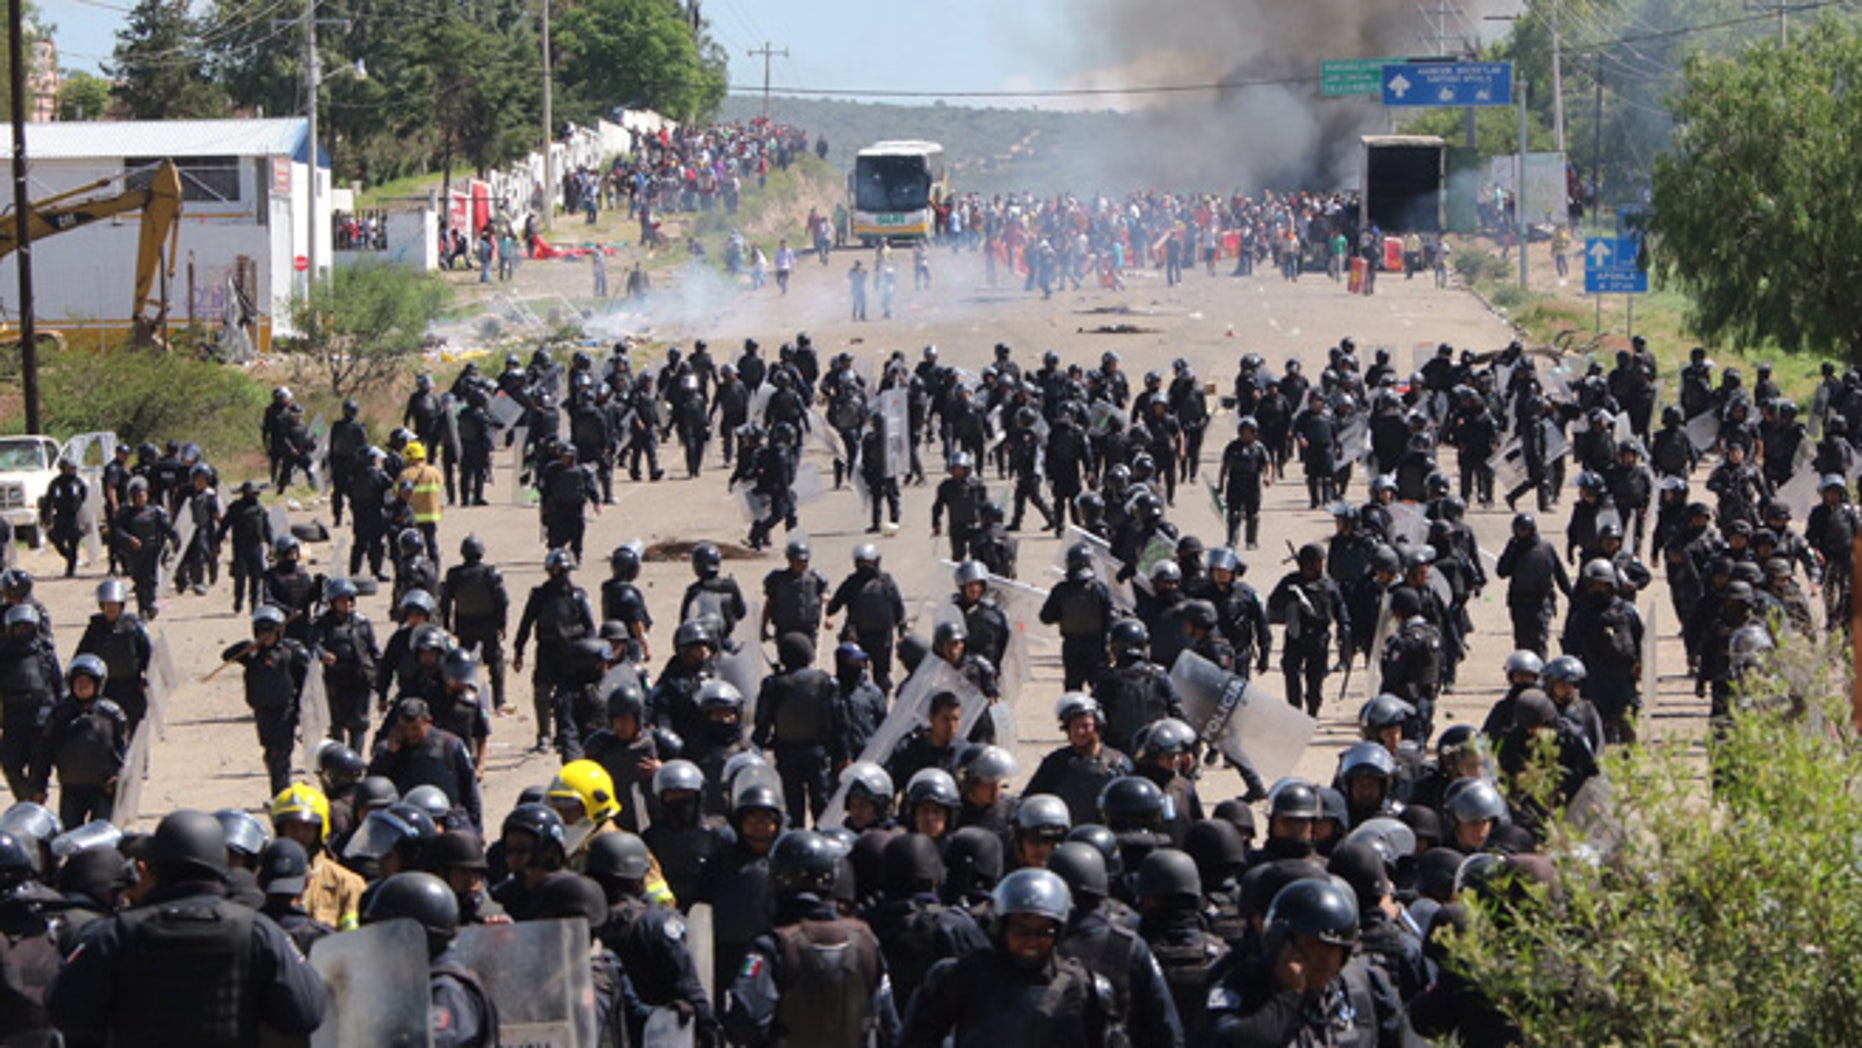 Riot police are forced to fall back as they battle with protesting teachers who were blocking a federal highway in the state of Oaxaca, near the town of Nochixtlan, Mexico, Sunday, June 19, 2016. The teachers are protesting against plans to overhaul the country's education system which include federally mandated teacher evaluations. (AP Photo/Luis Alberto Cruz Hernandez)